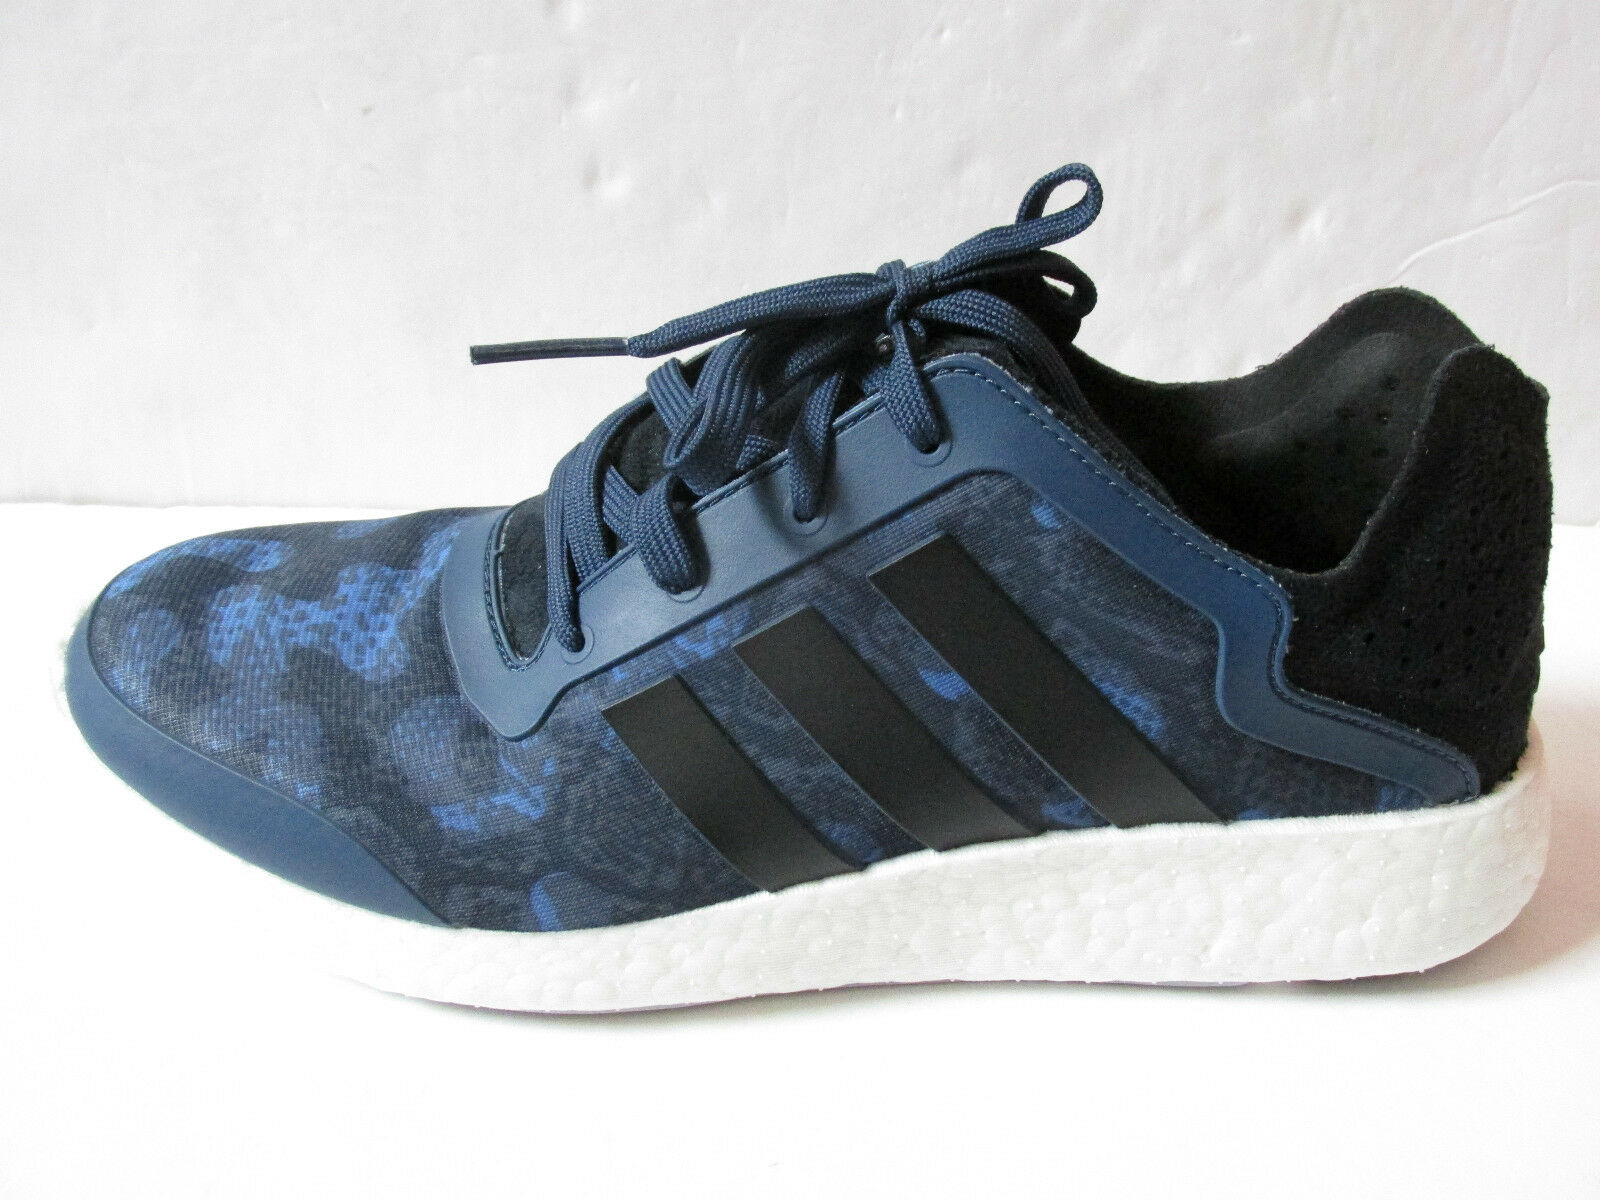 adidas pureboost mens running trainers M21342 sneakers shoes